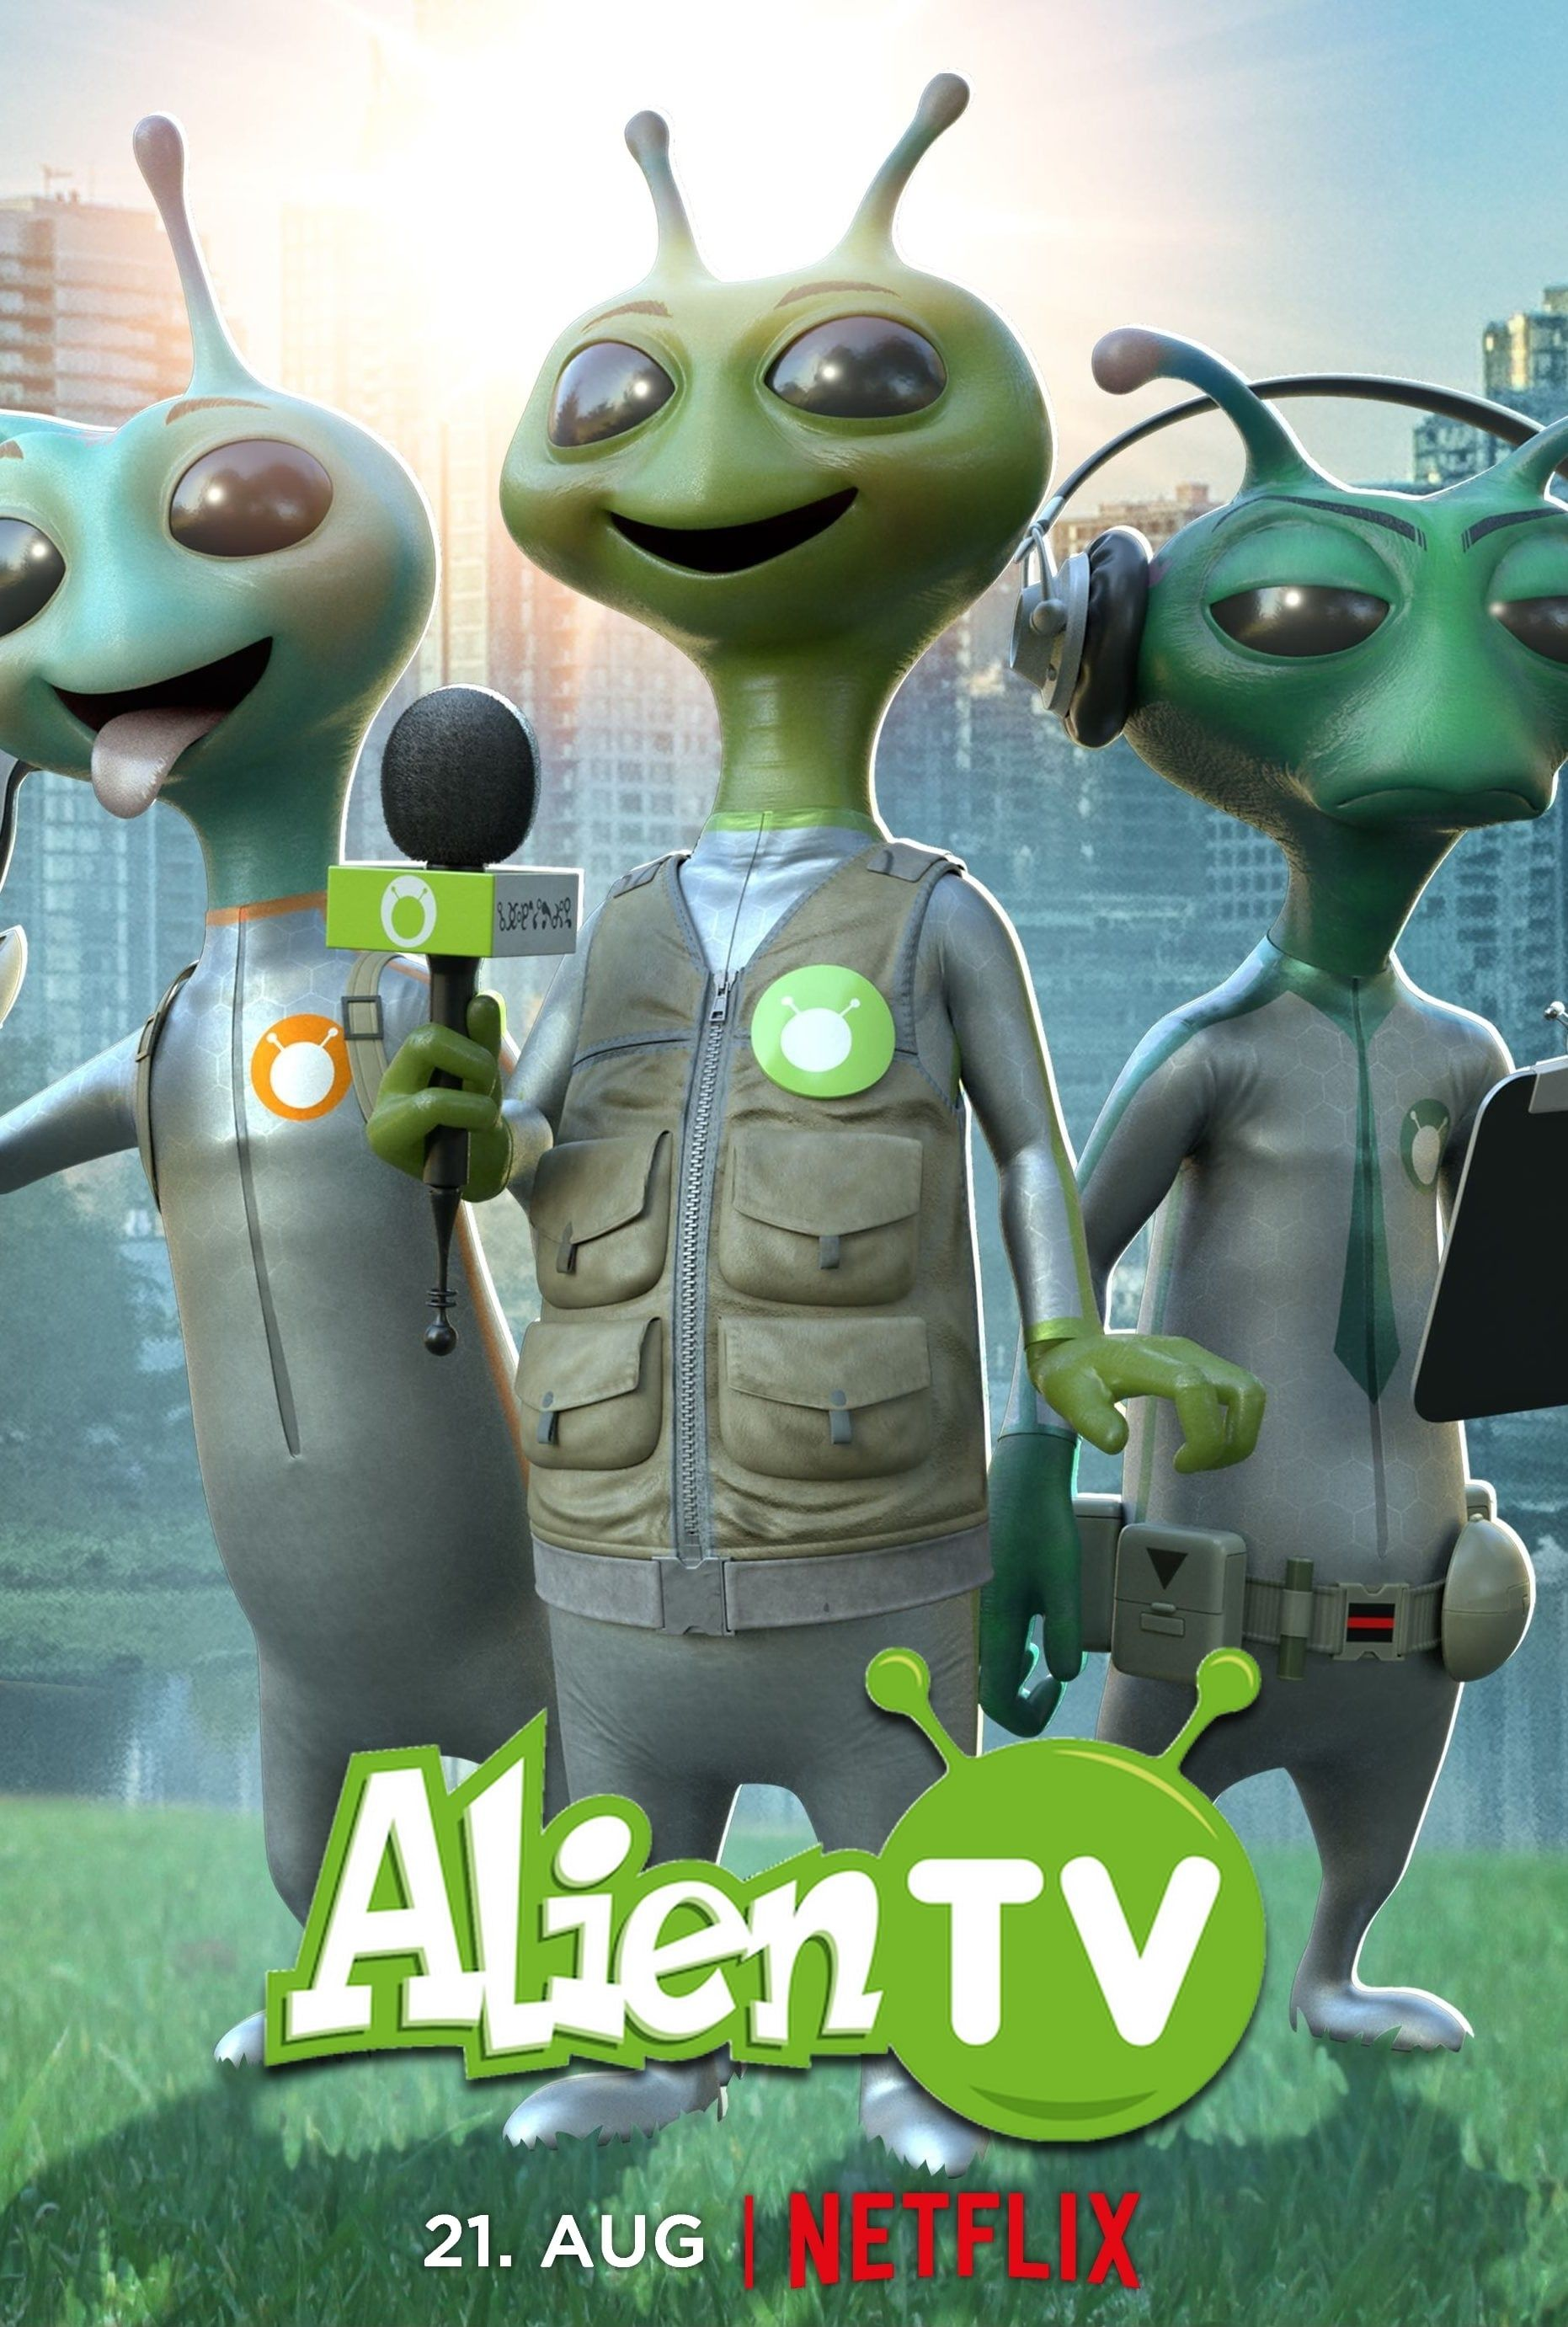 Alien TV ne zaman